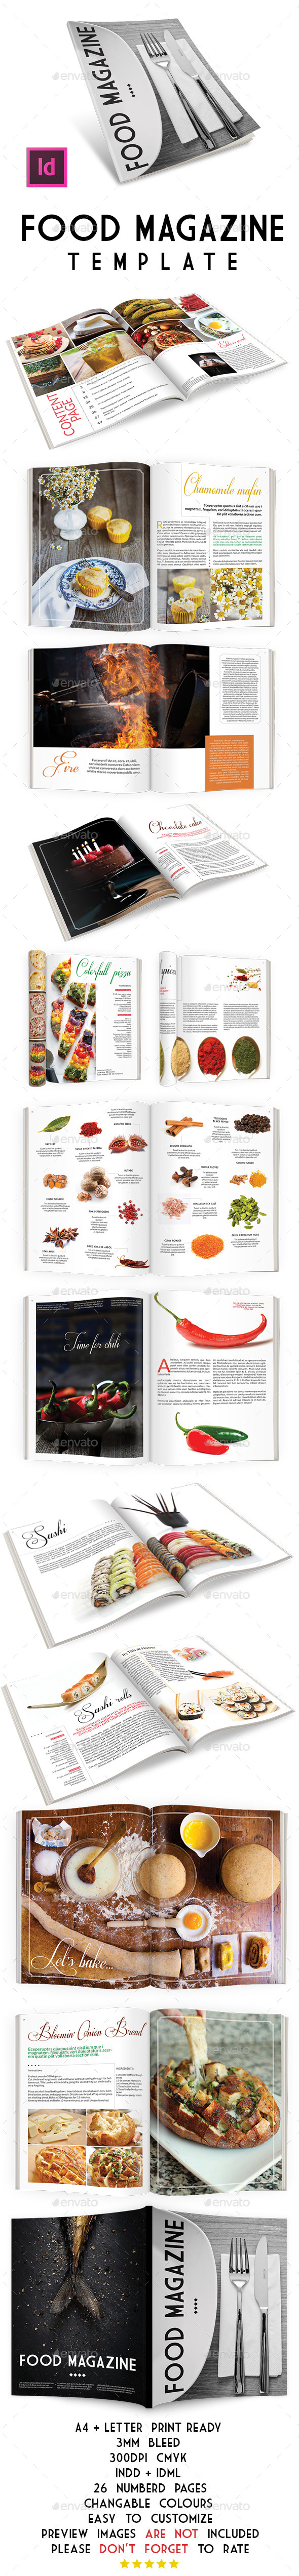 Food Magazine Template - Magazines Print Templates